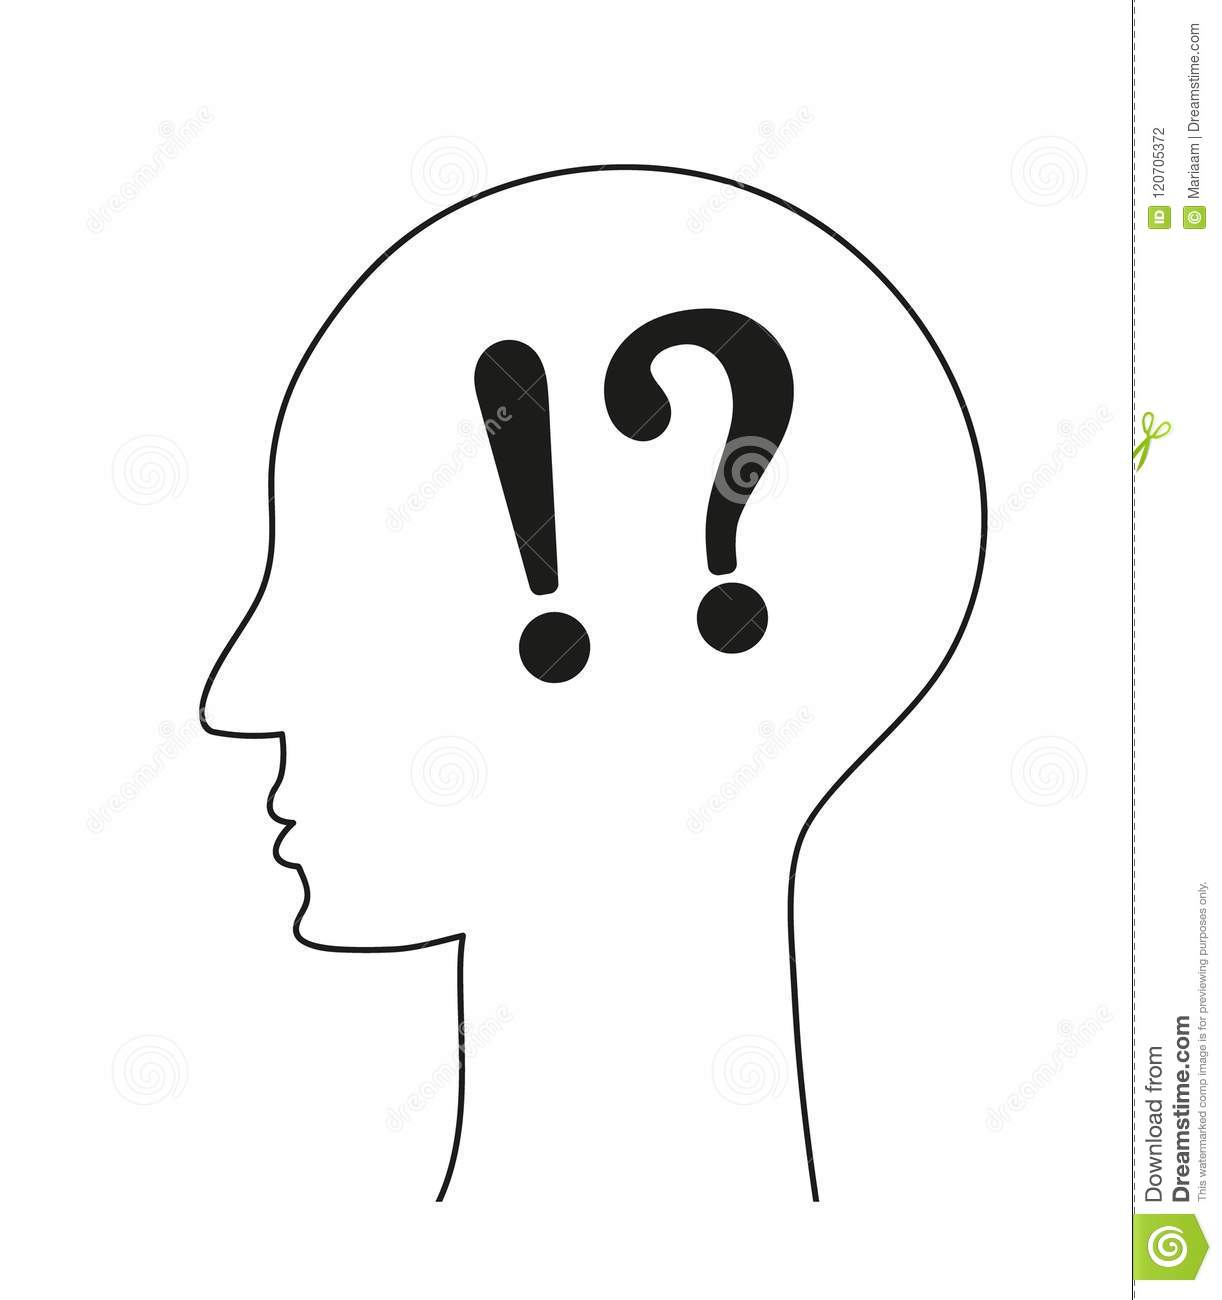 black and white thinking questions